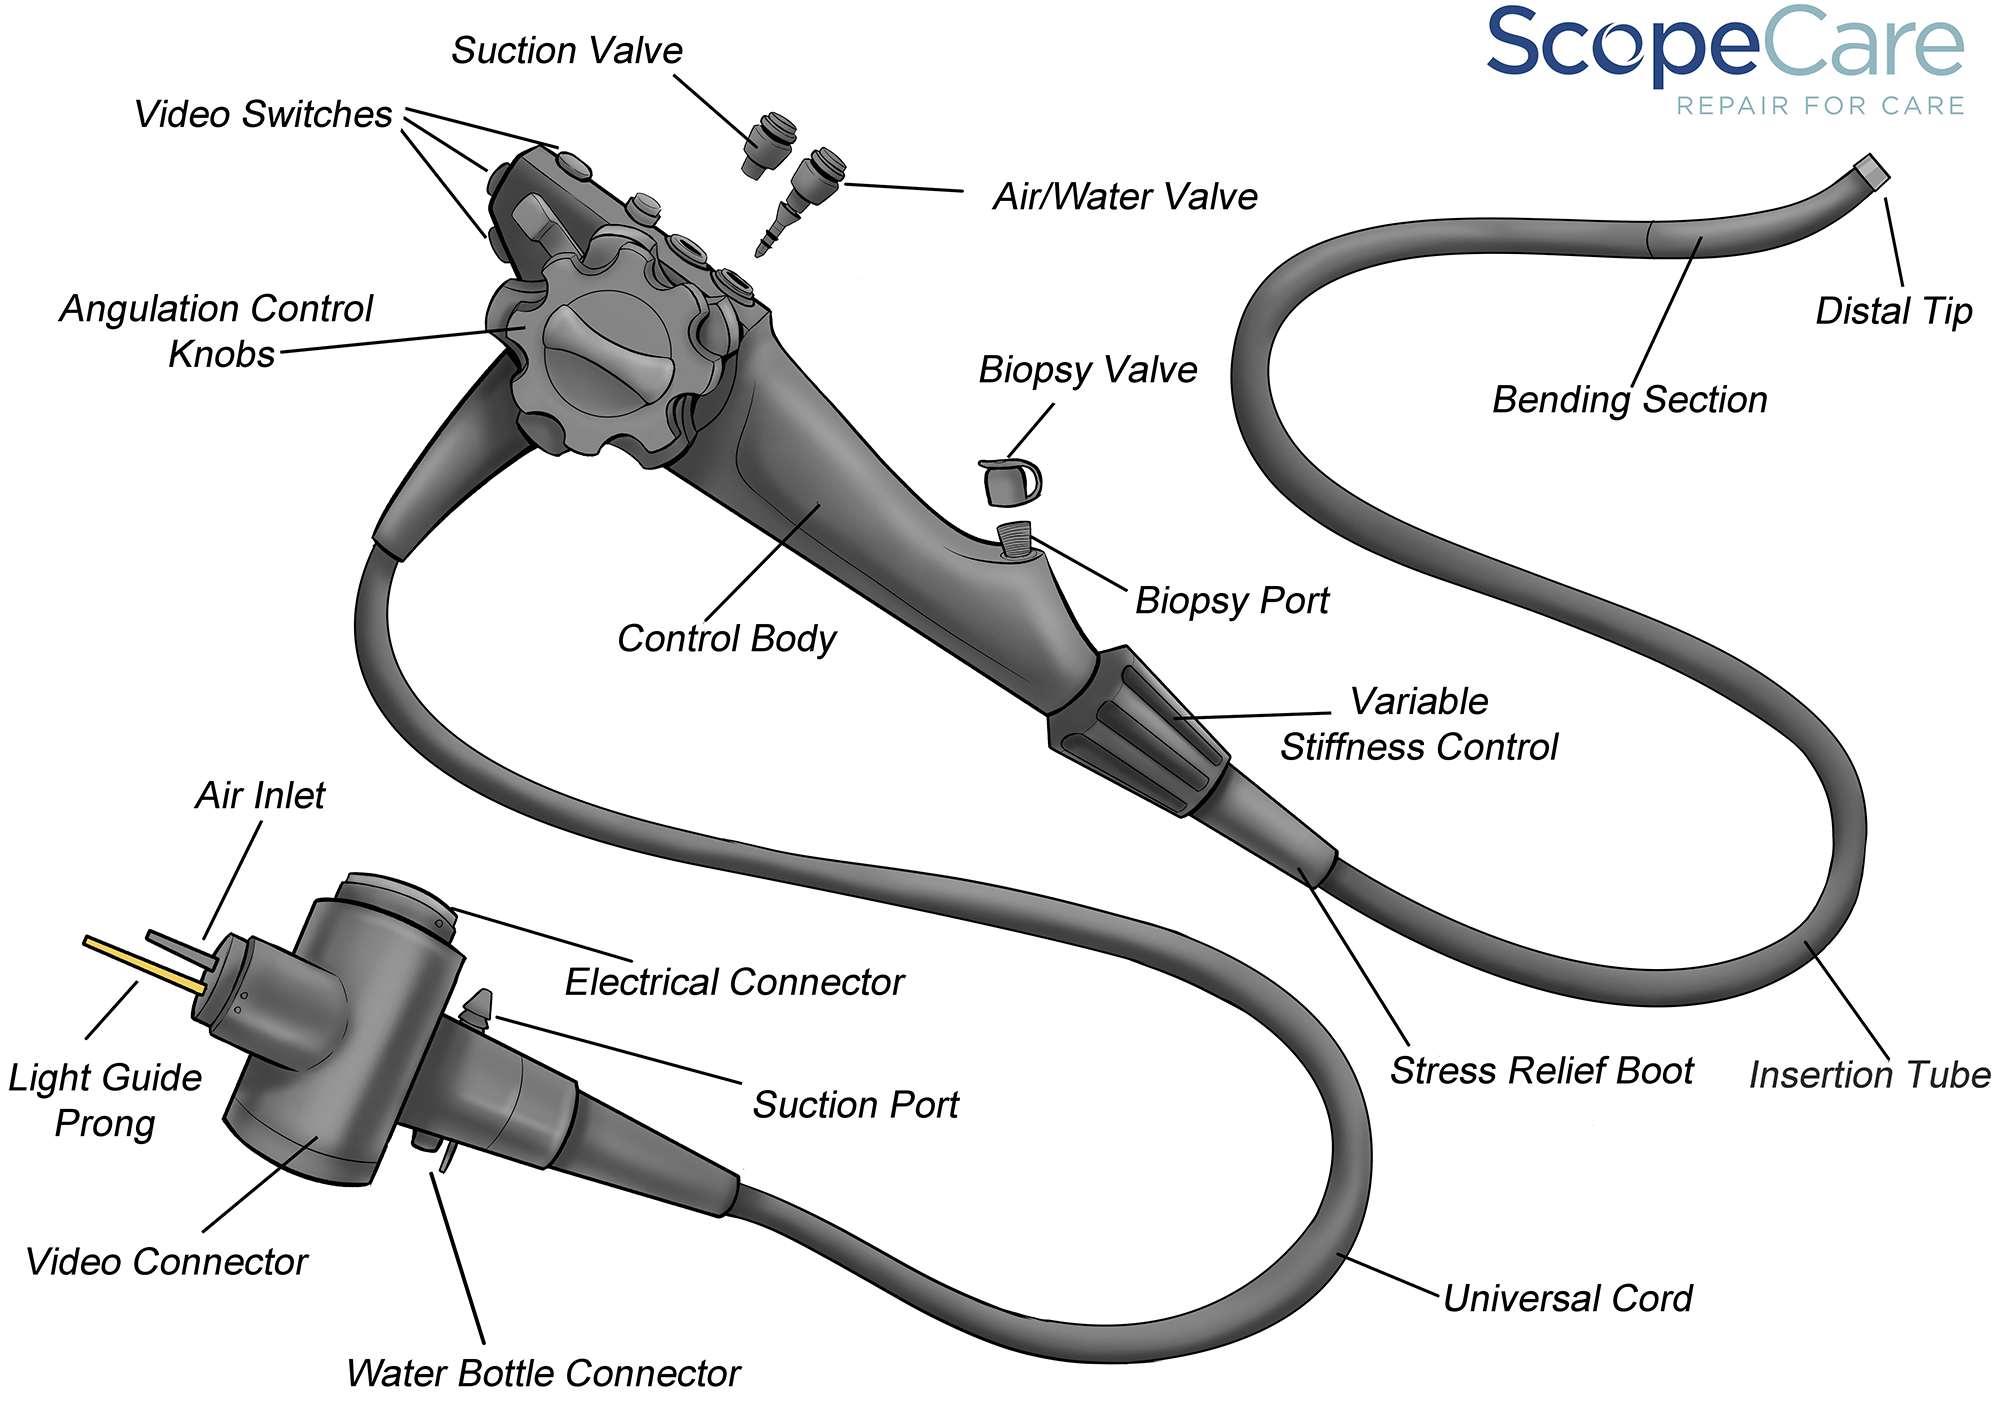 Flex Endoscope